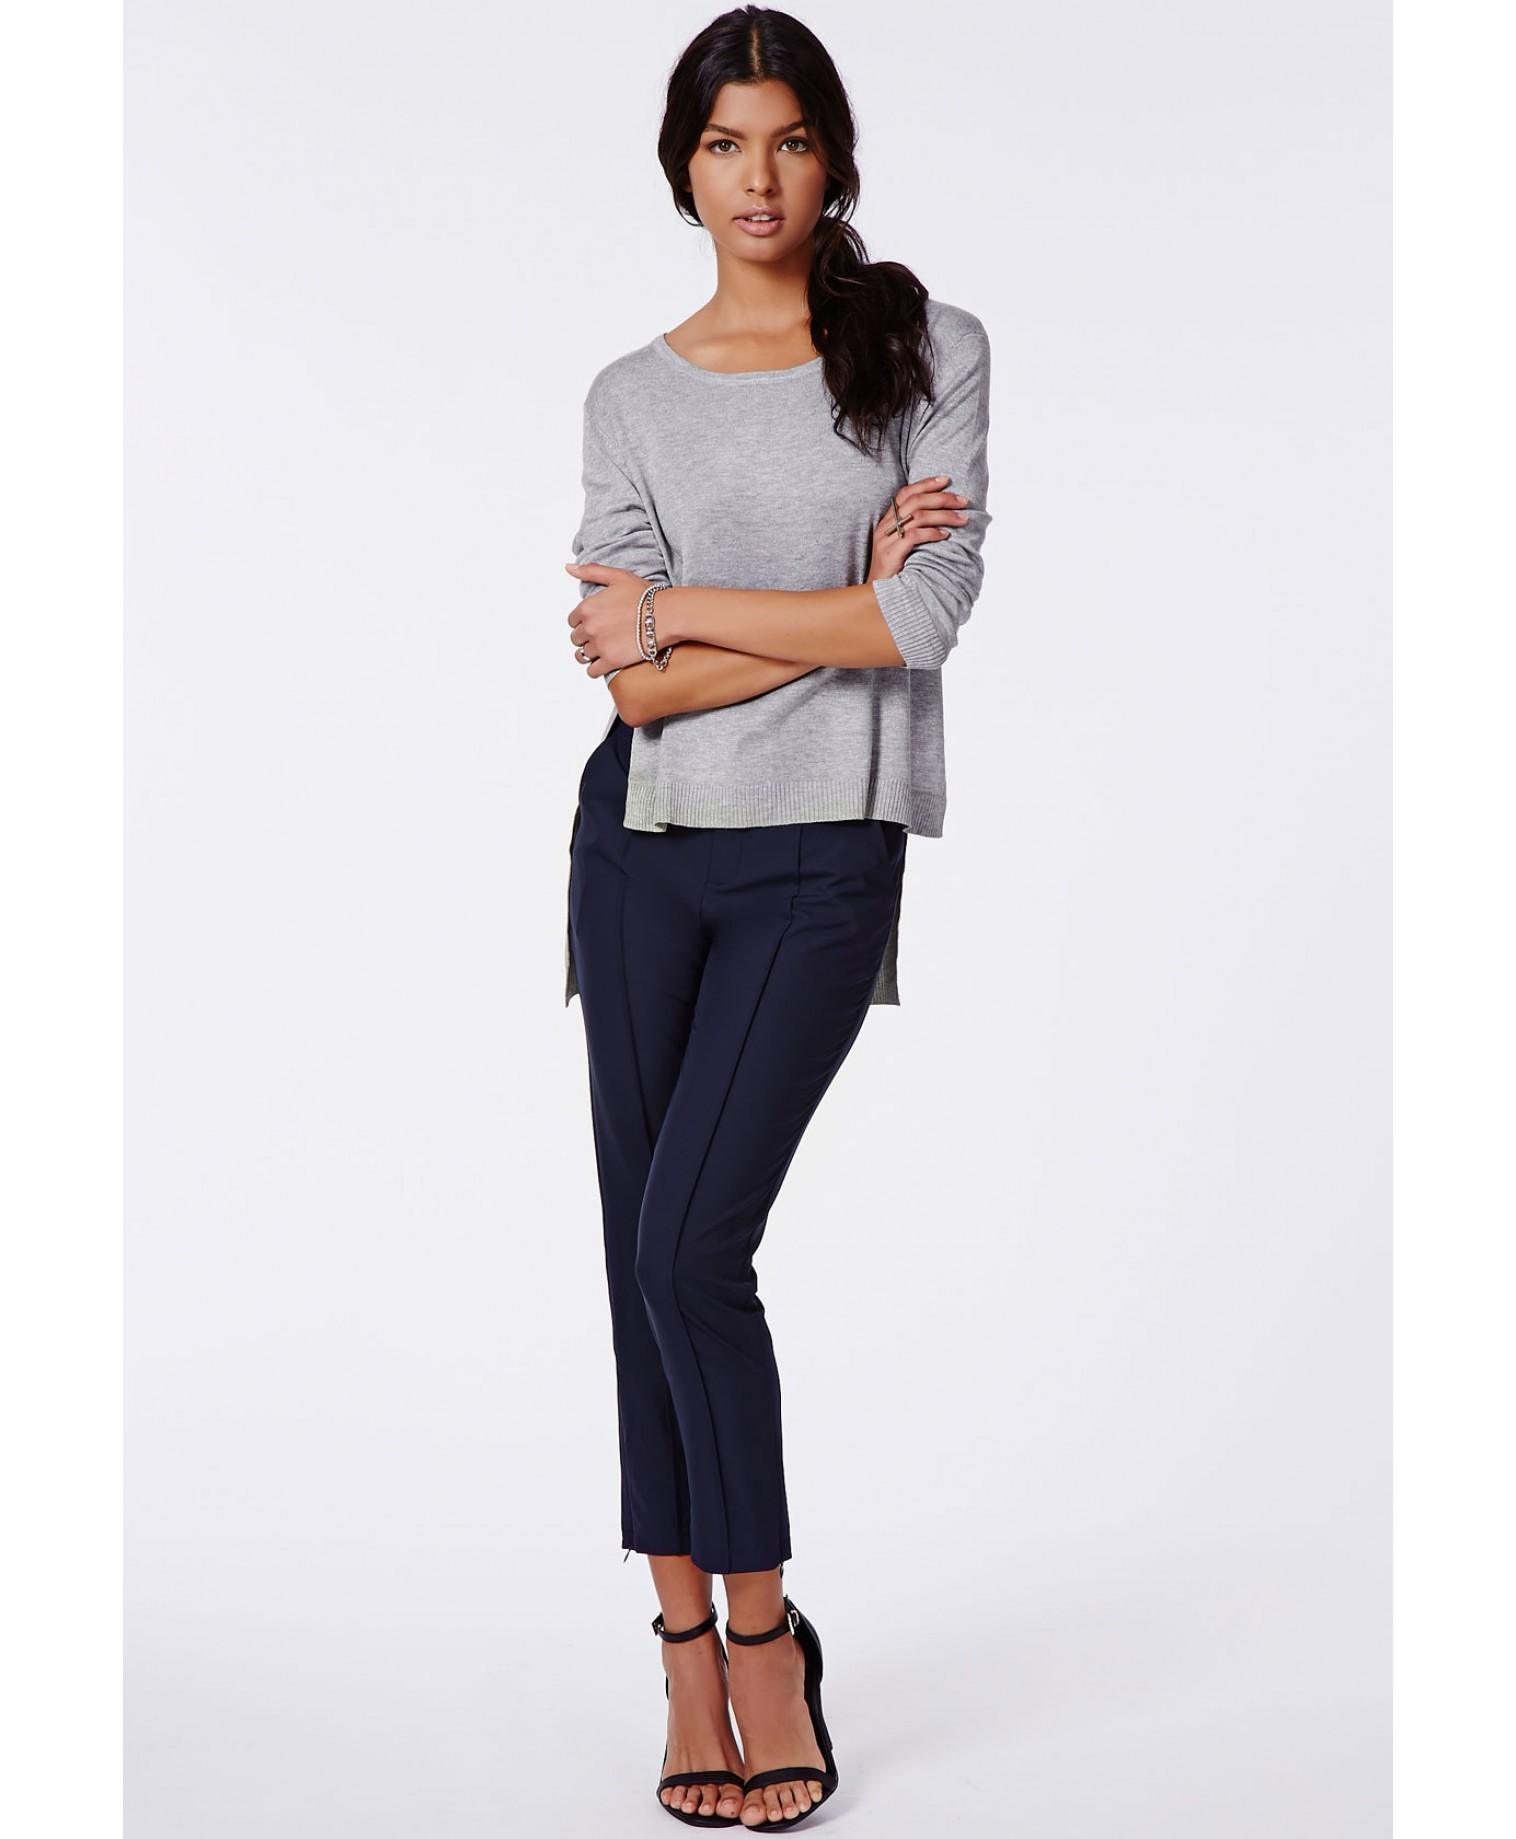 Missguided - Leanne Cigarette Trousers Navy